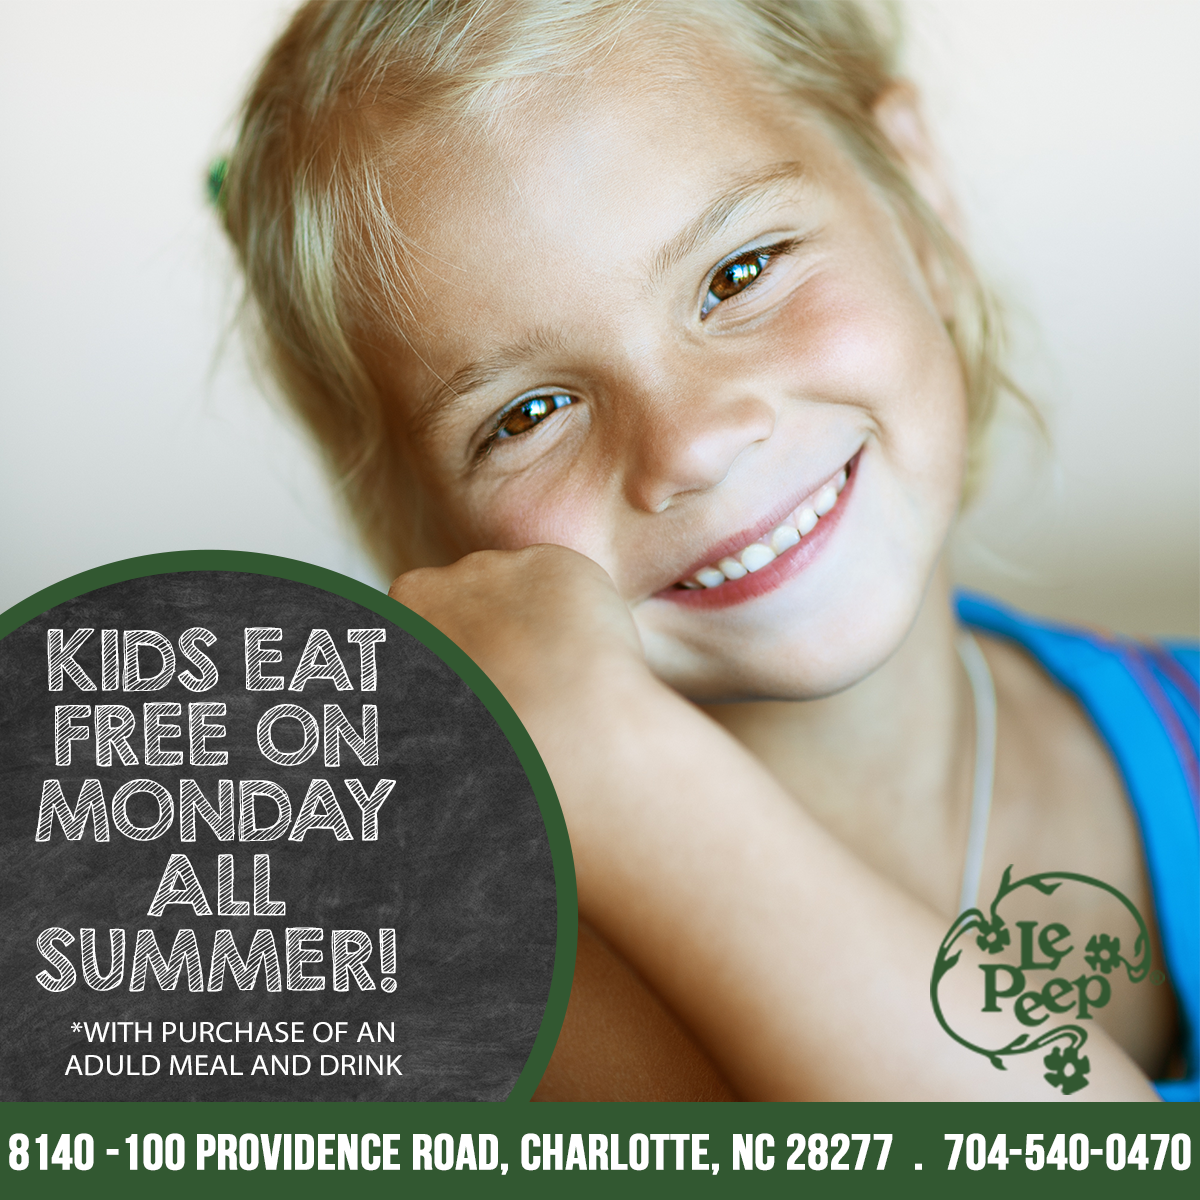 Kids Eat Free on Monday All Summer. With purchase of an adult meal and drink